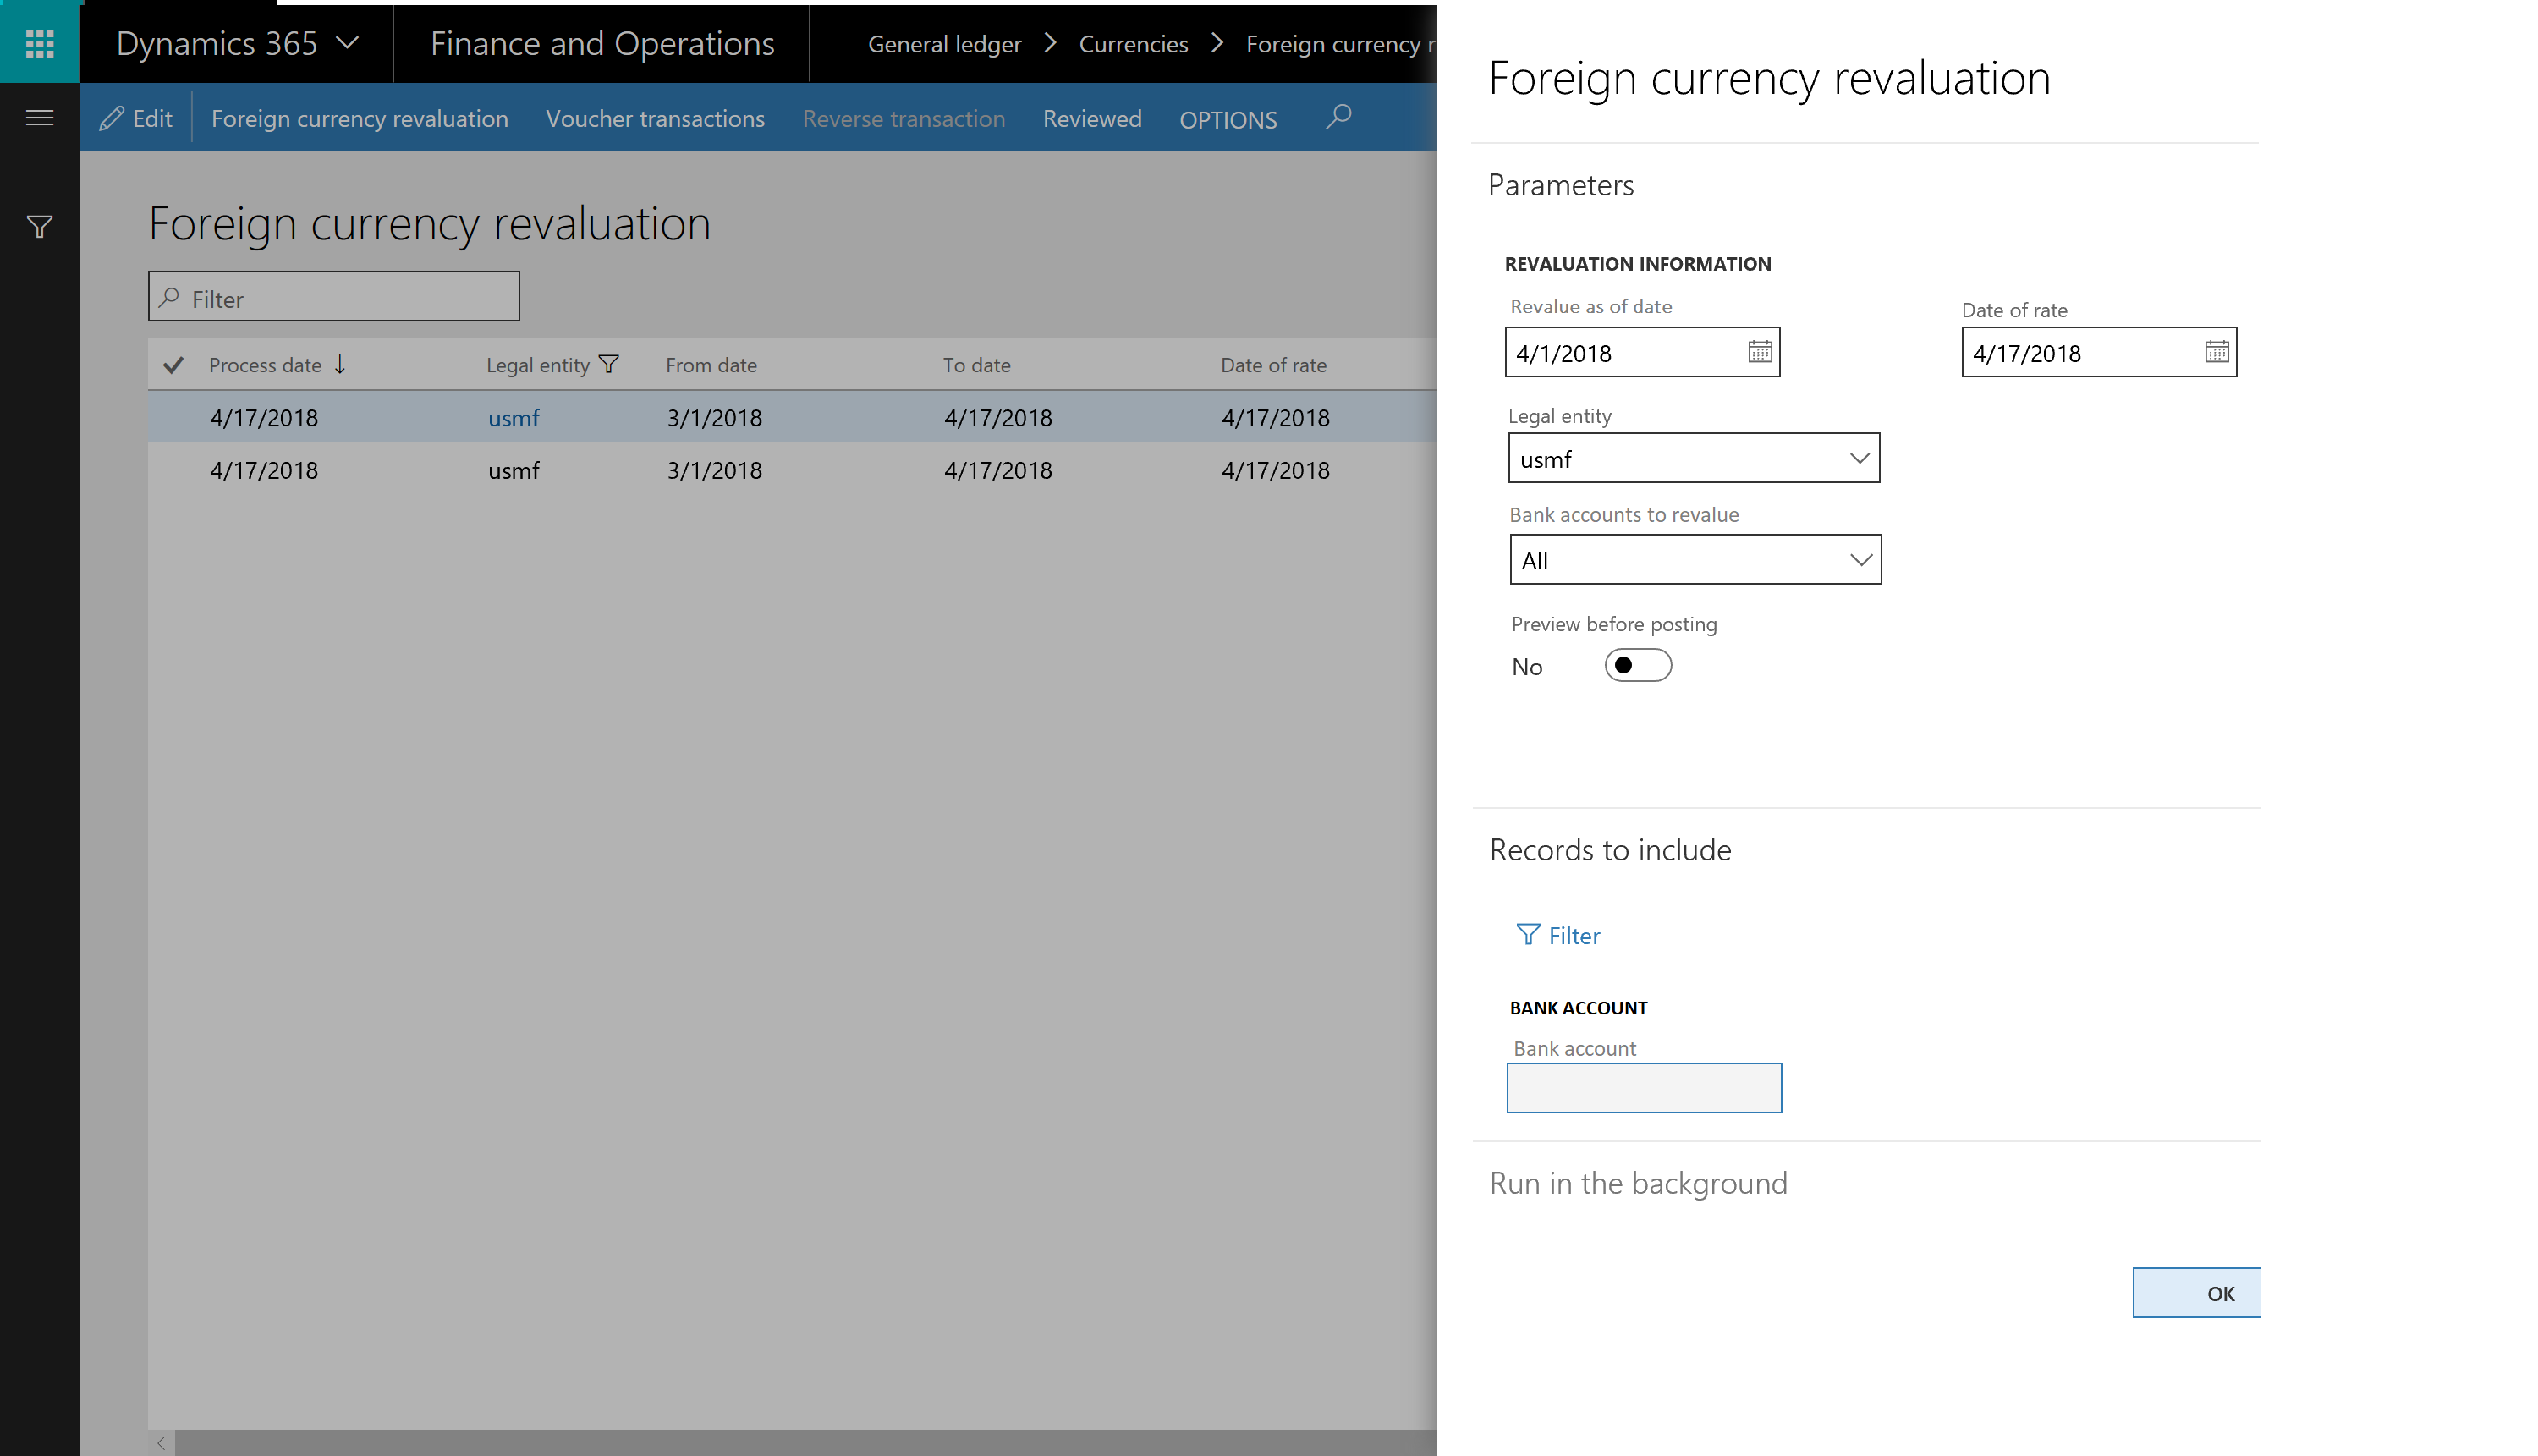 New feature in 10 0 2 - Bank revaluation - Finance and Operations